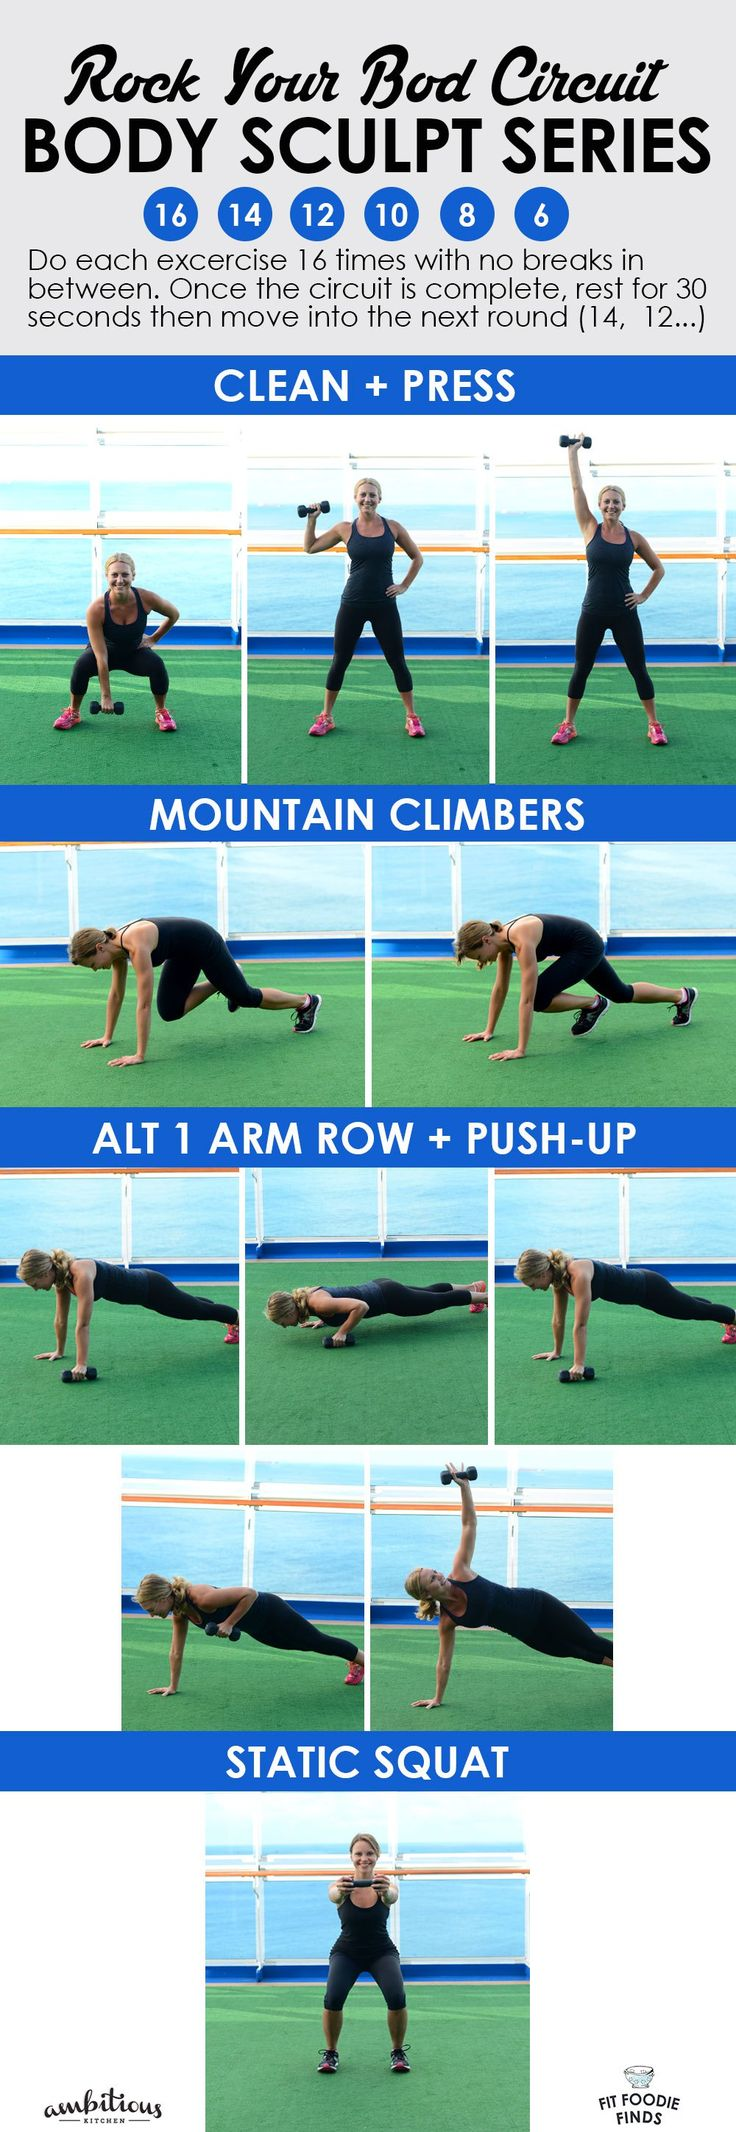 161 Best Exercise Images On Pinterest Exercises Fitness Workouts Full Body Dumbell Circuit Workout Pictures Photos And For Grab Some Dumbbells Set Aside 30 Minutes To Rock Your Bod With This Sculpt Its Interval Based So Get Ready Sweat